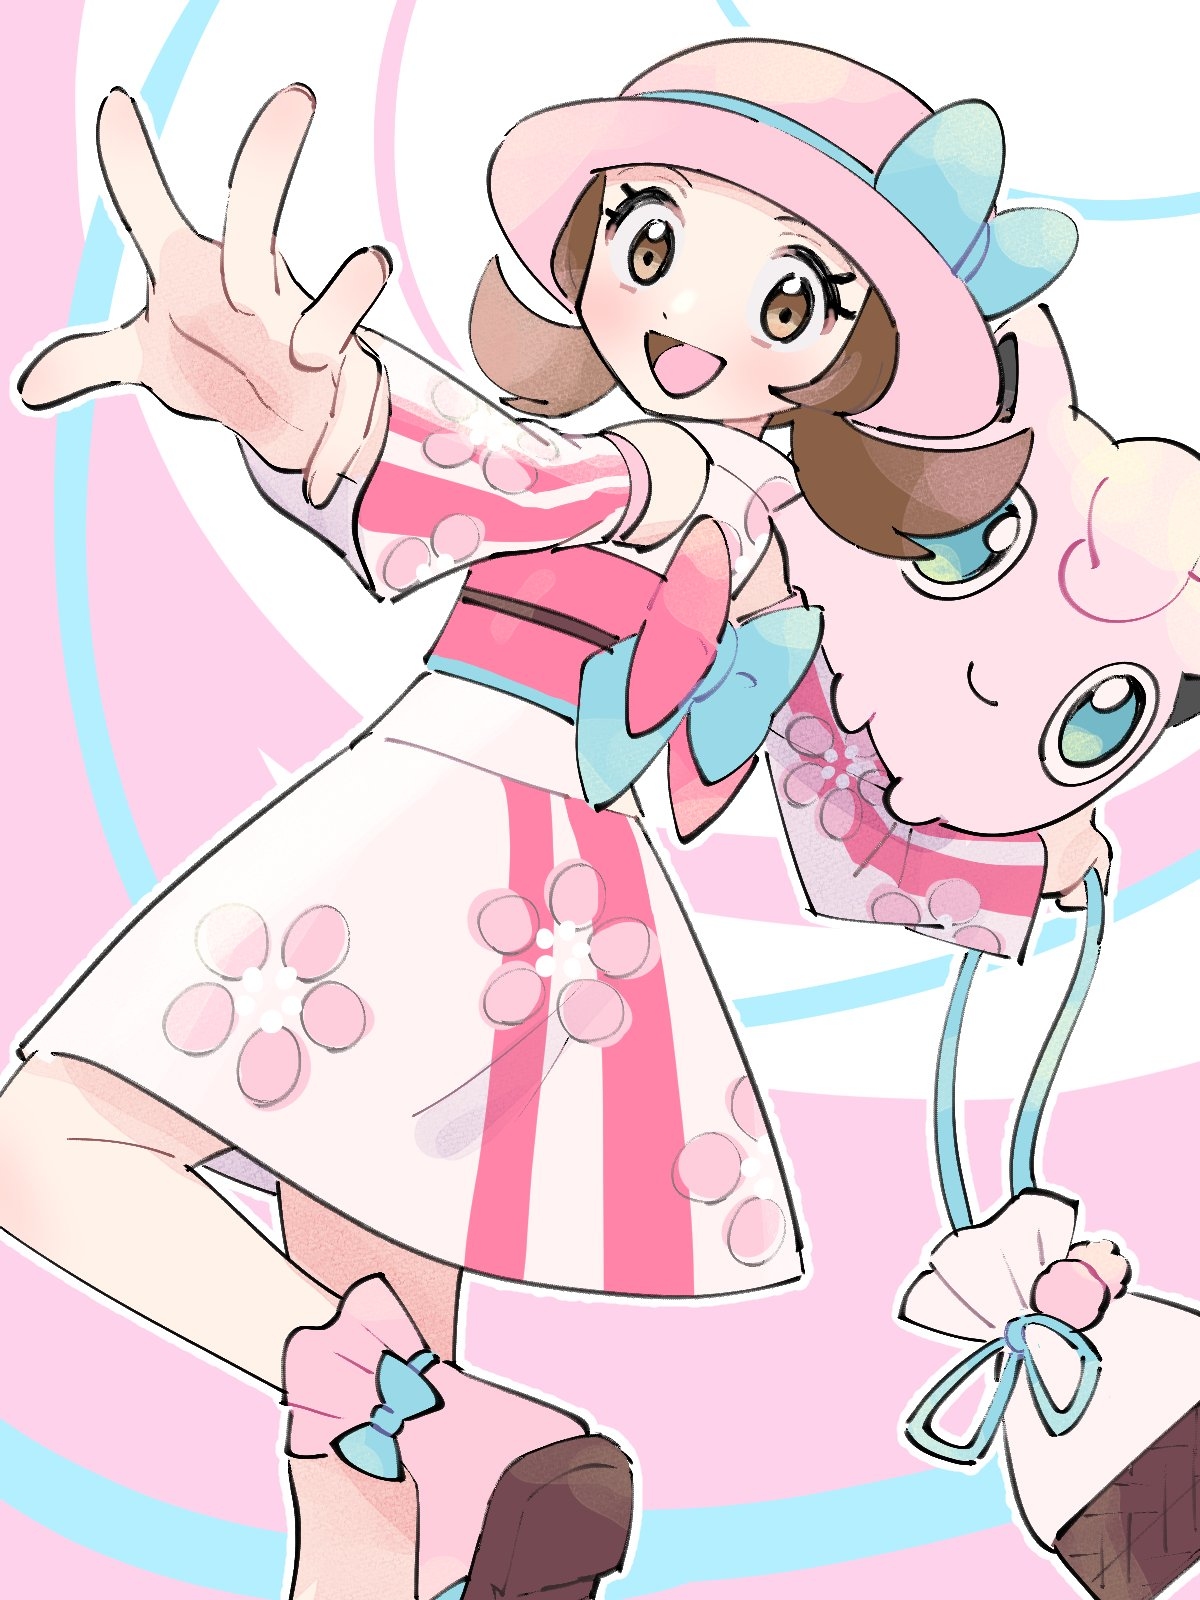 1girl :d alternate_color bow bow_legwear brown_eyes brown_hair commentary_request detached_sleeves eyelashes floral_print gen_1_pokemon hat hat_bow highres holding jigglypuff leg_up lyra_(pokemon) official_alternate_costume open_mouth pink_headwear pink_legwear pokemon pokemon_(creature) pokemon_(game) pokemon_masters_ex pokemon_on_arm pouch pumpkinpan sandals sash smile socks spread_fingers tongue twintails